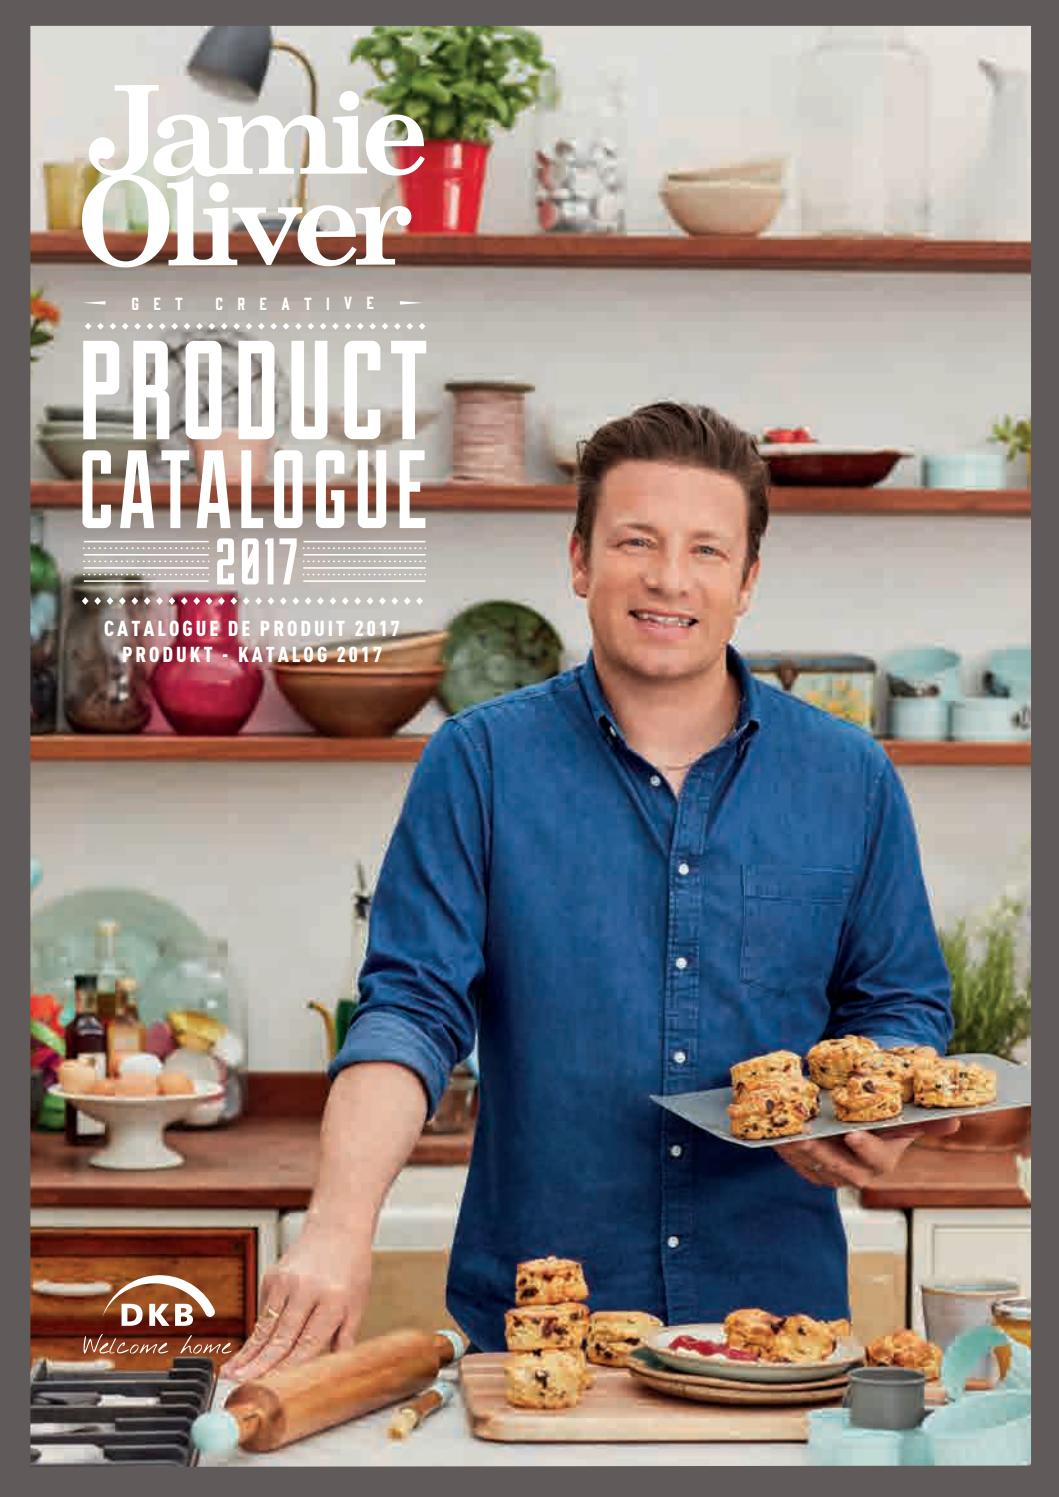 Jamie oliver catalogue by new vision boutique issuu for Jamie oliver style kitchen design